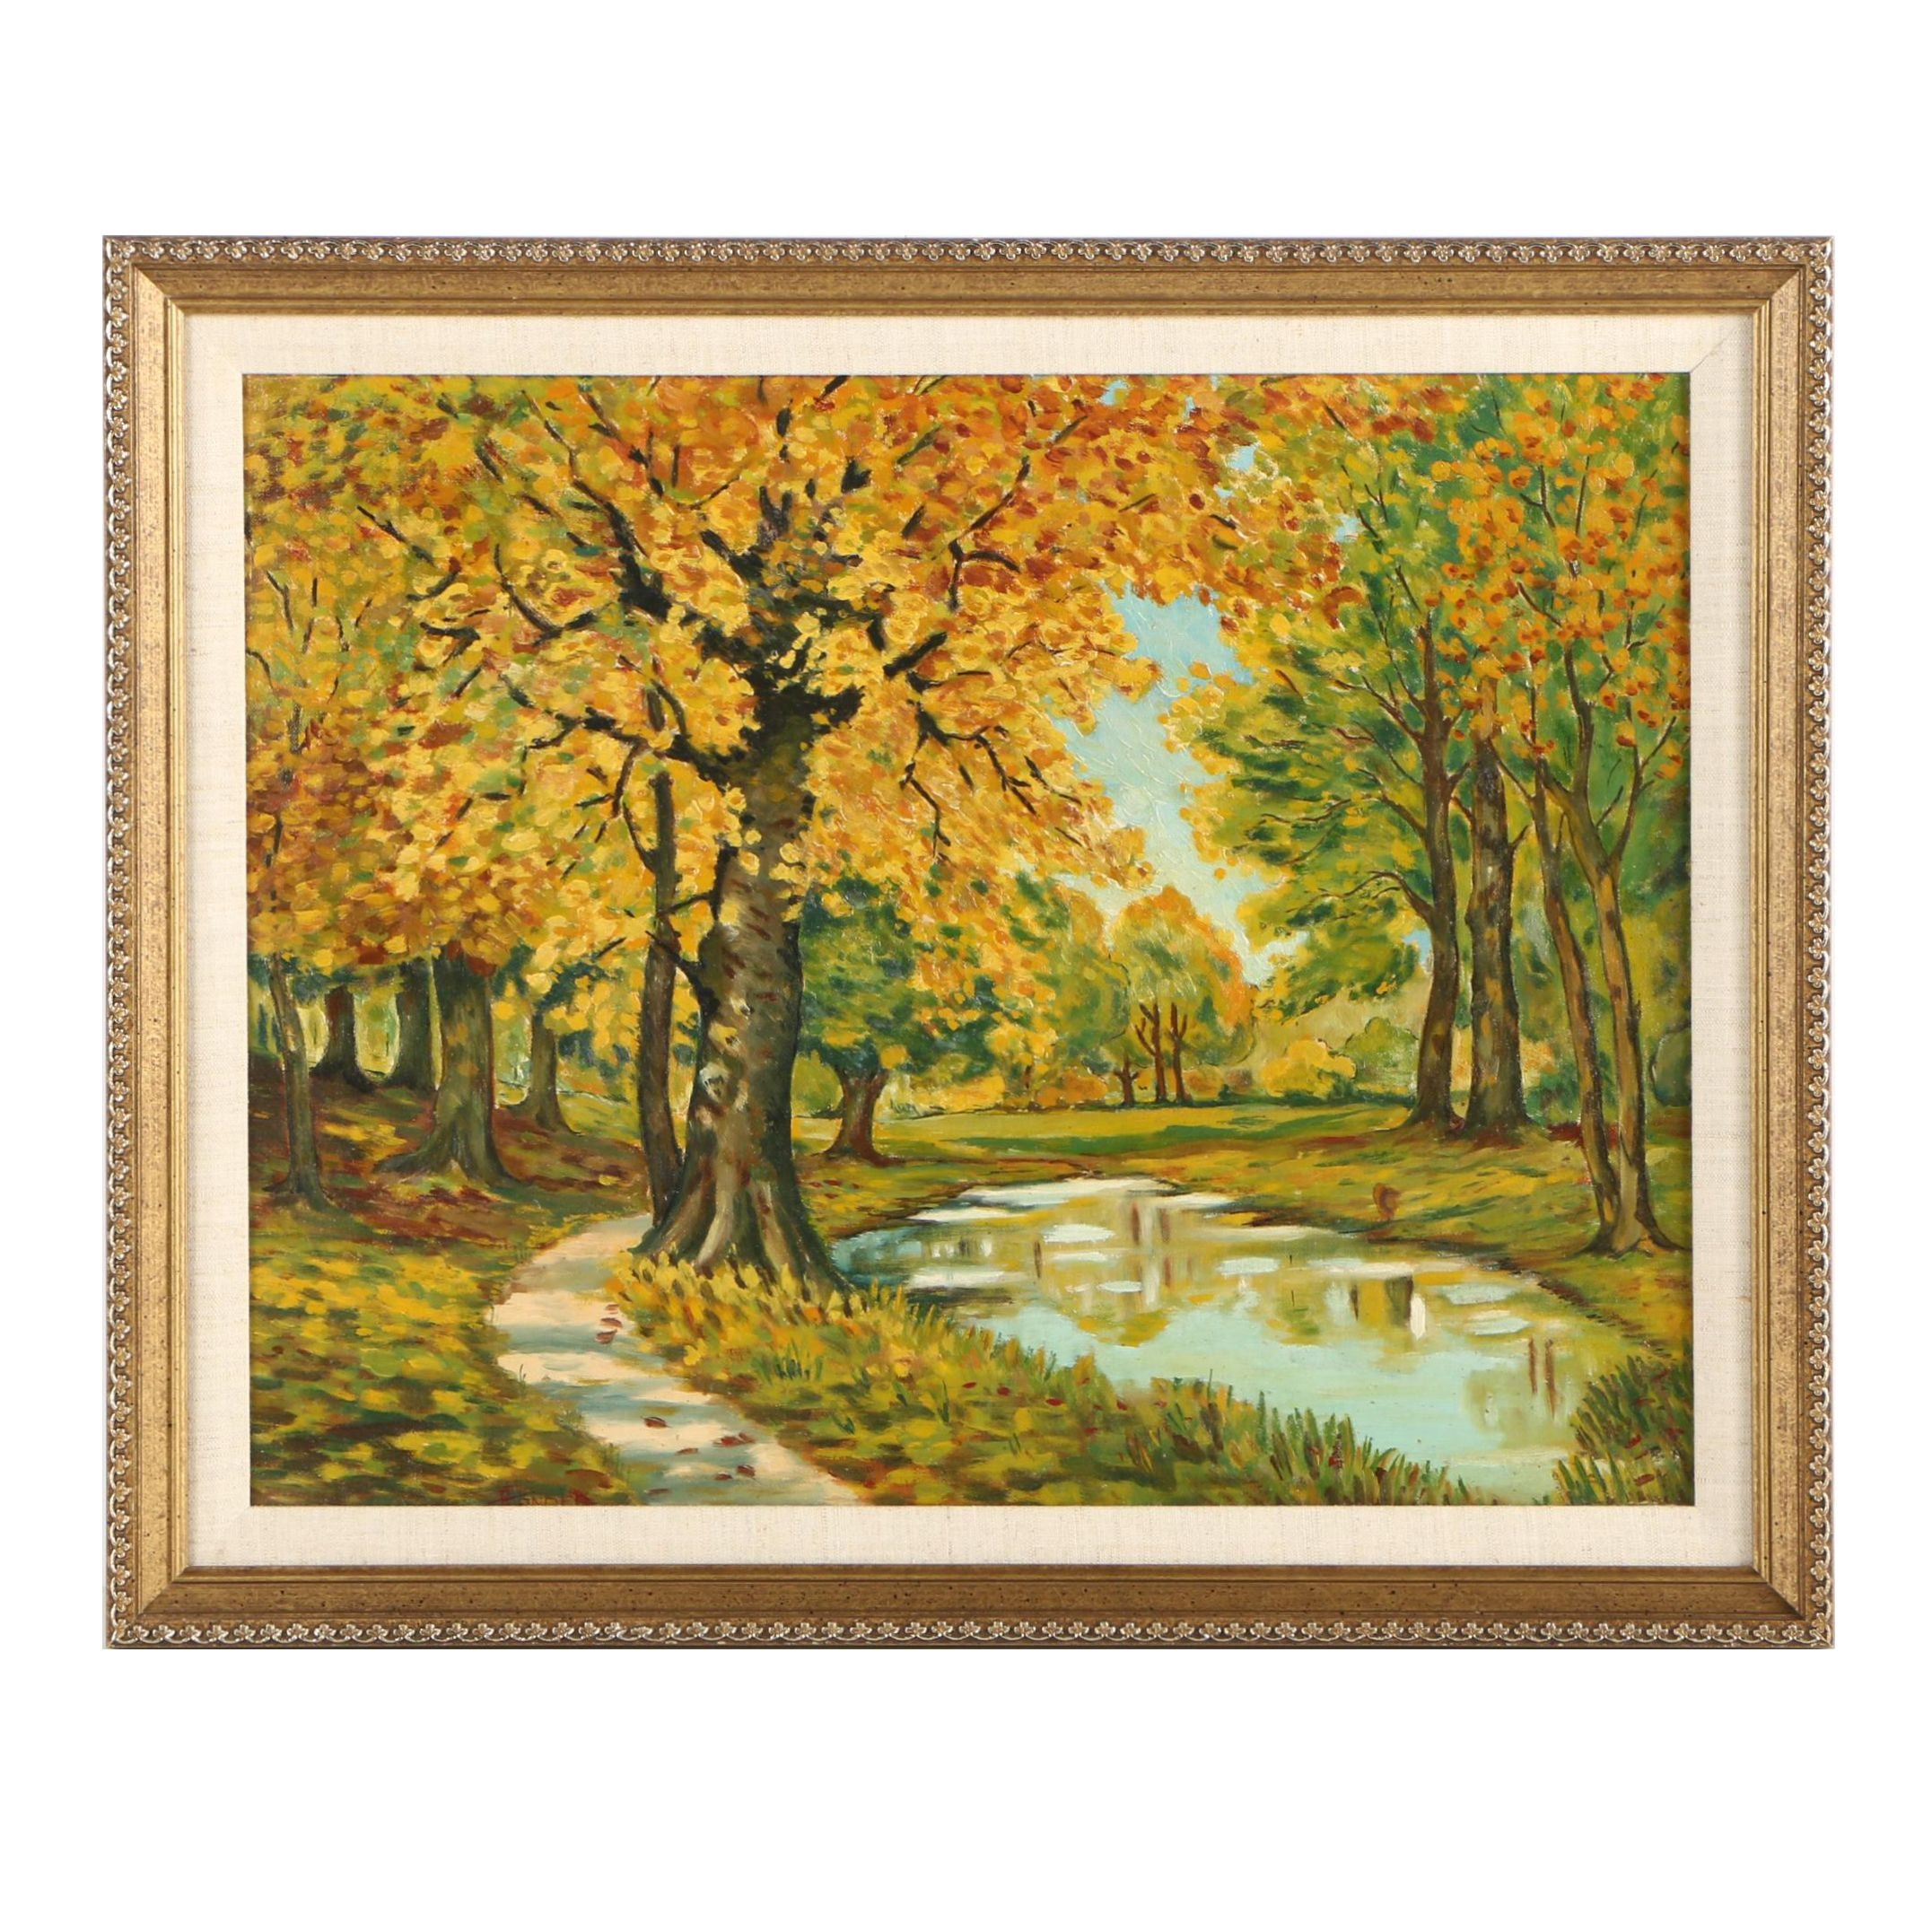 Irwin J. Sander Oil Painting of an Autumnal Landscape